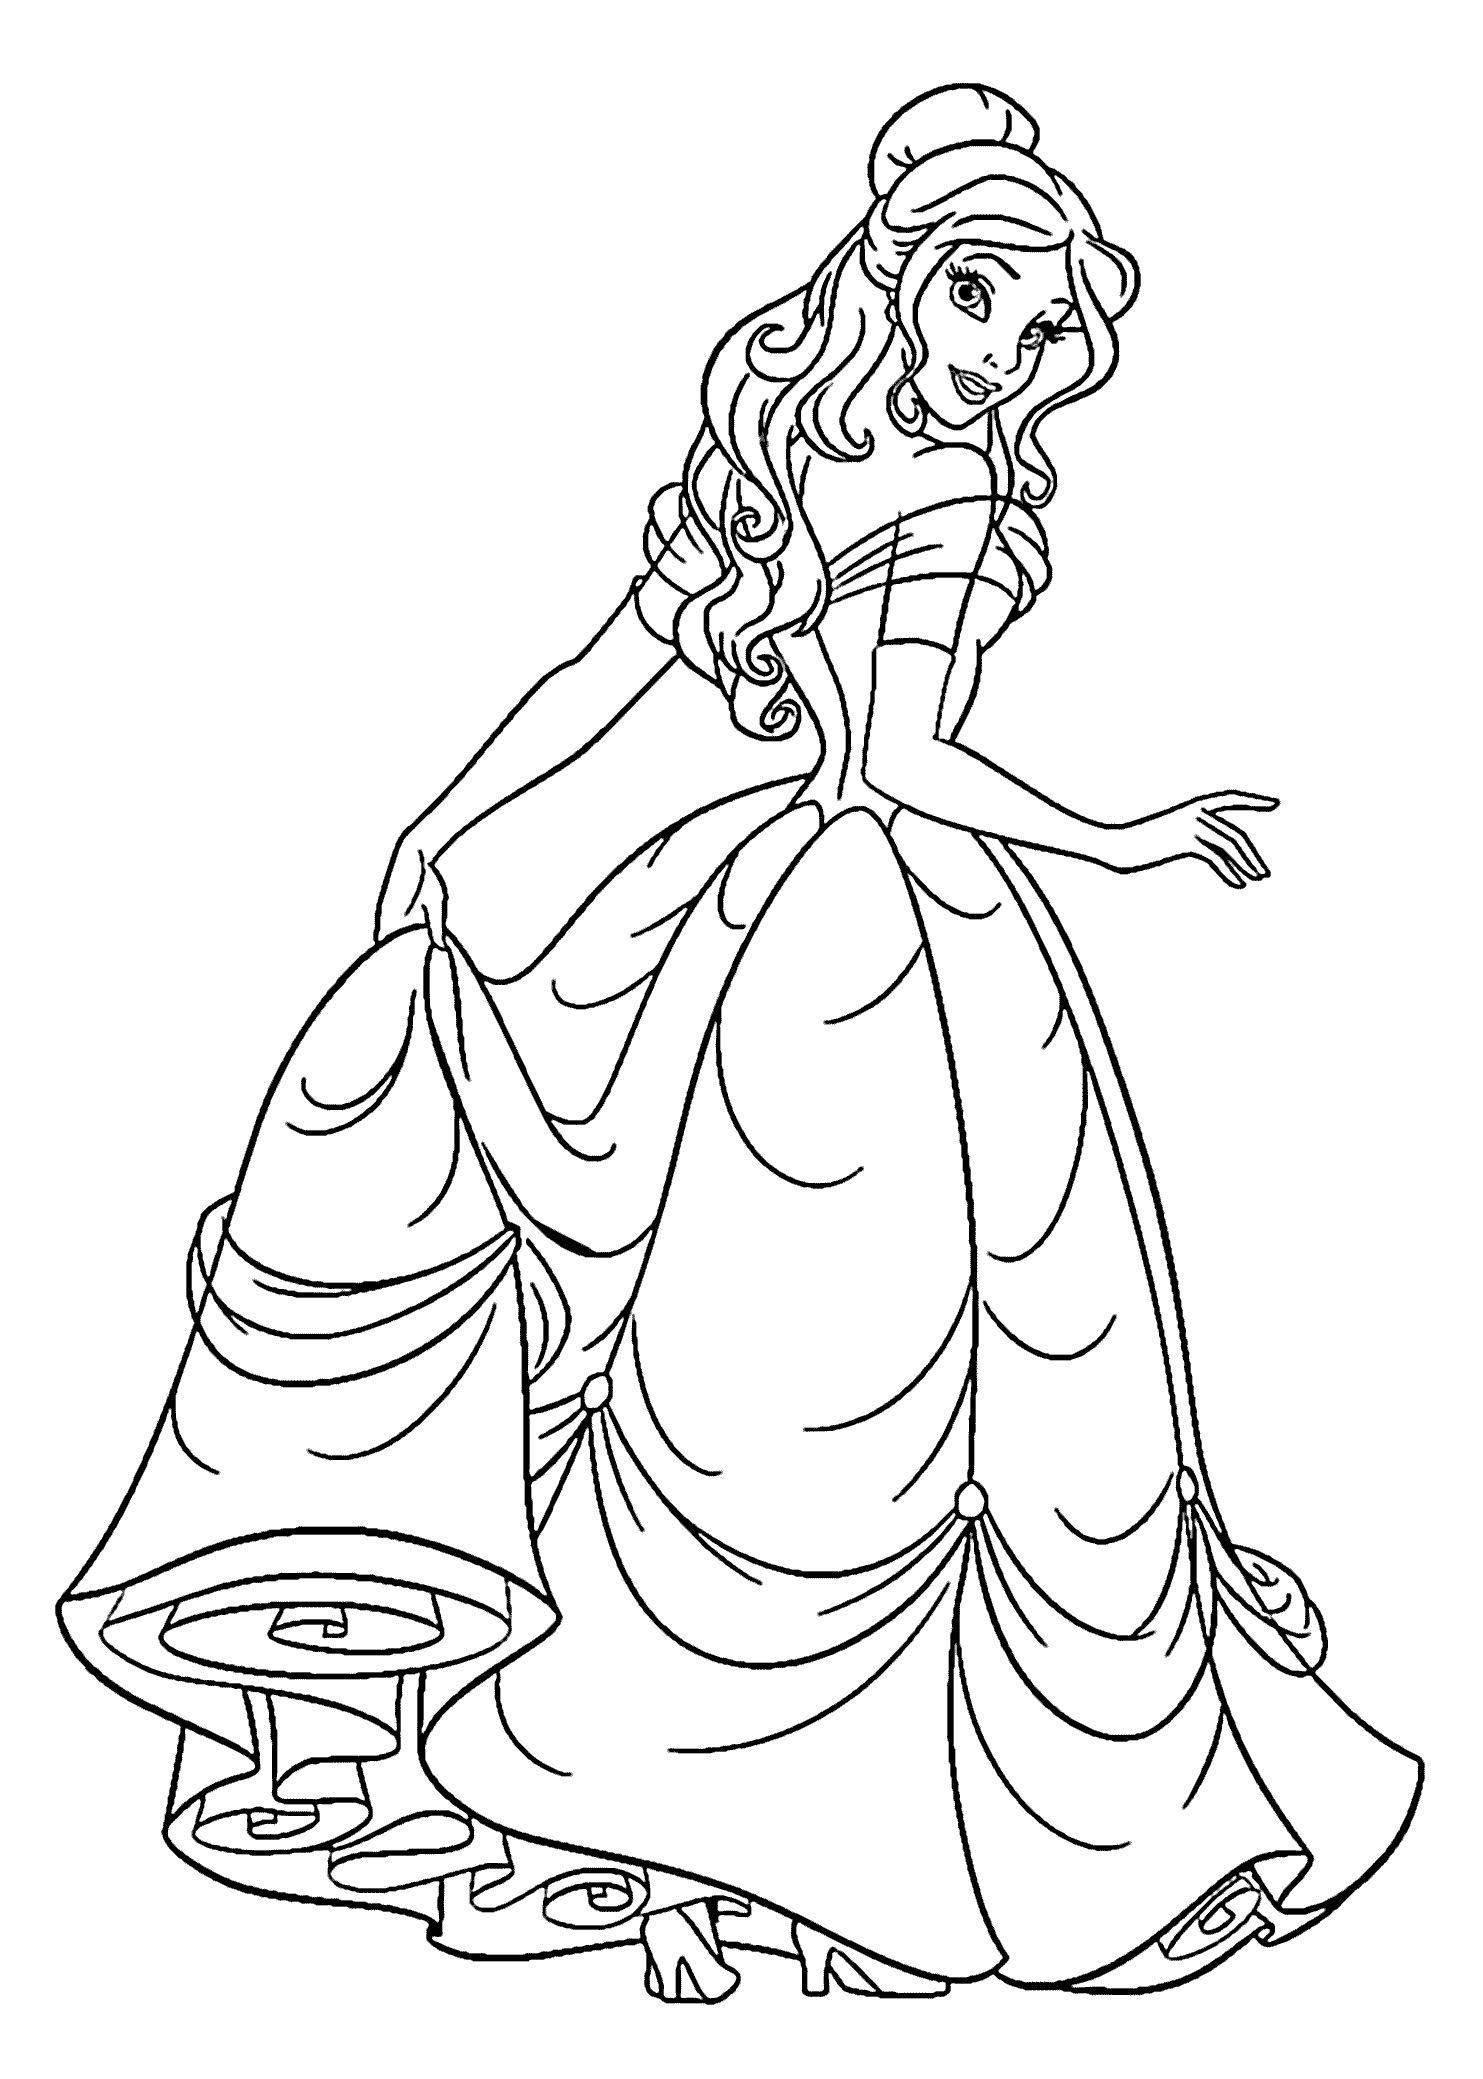 Printable Princess Wedding Coloring Pages Disney Princess Coloring Pages Disney Princess Colors Belle Coloring Pages